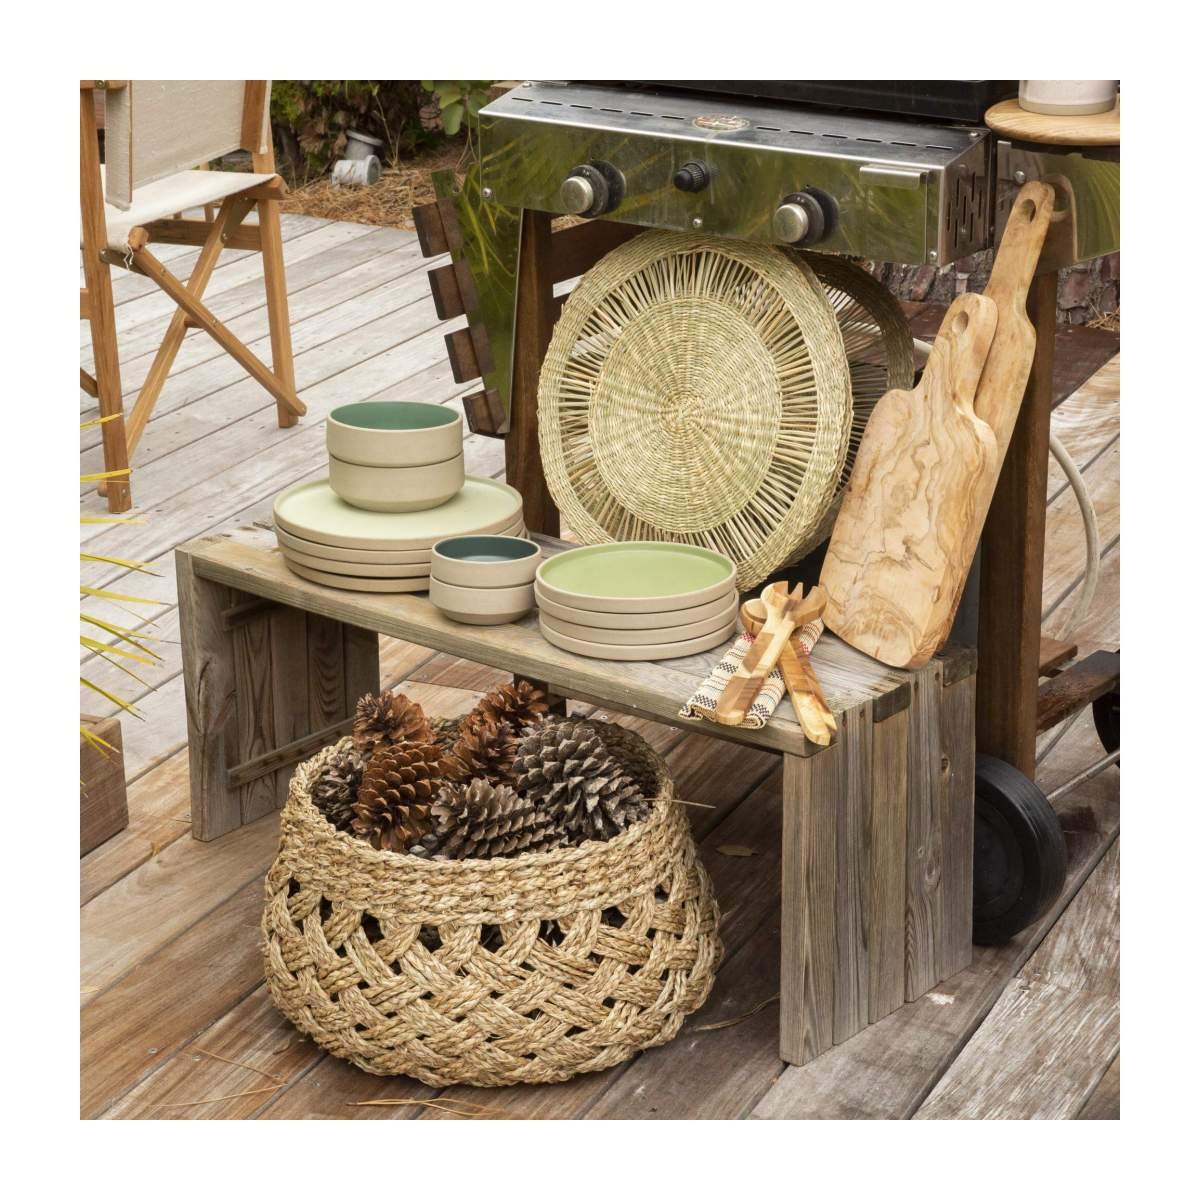 Set de table rond en jonc de mer - Naturel - 40 cm n°4